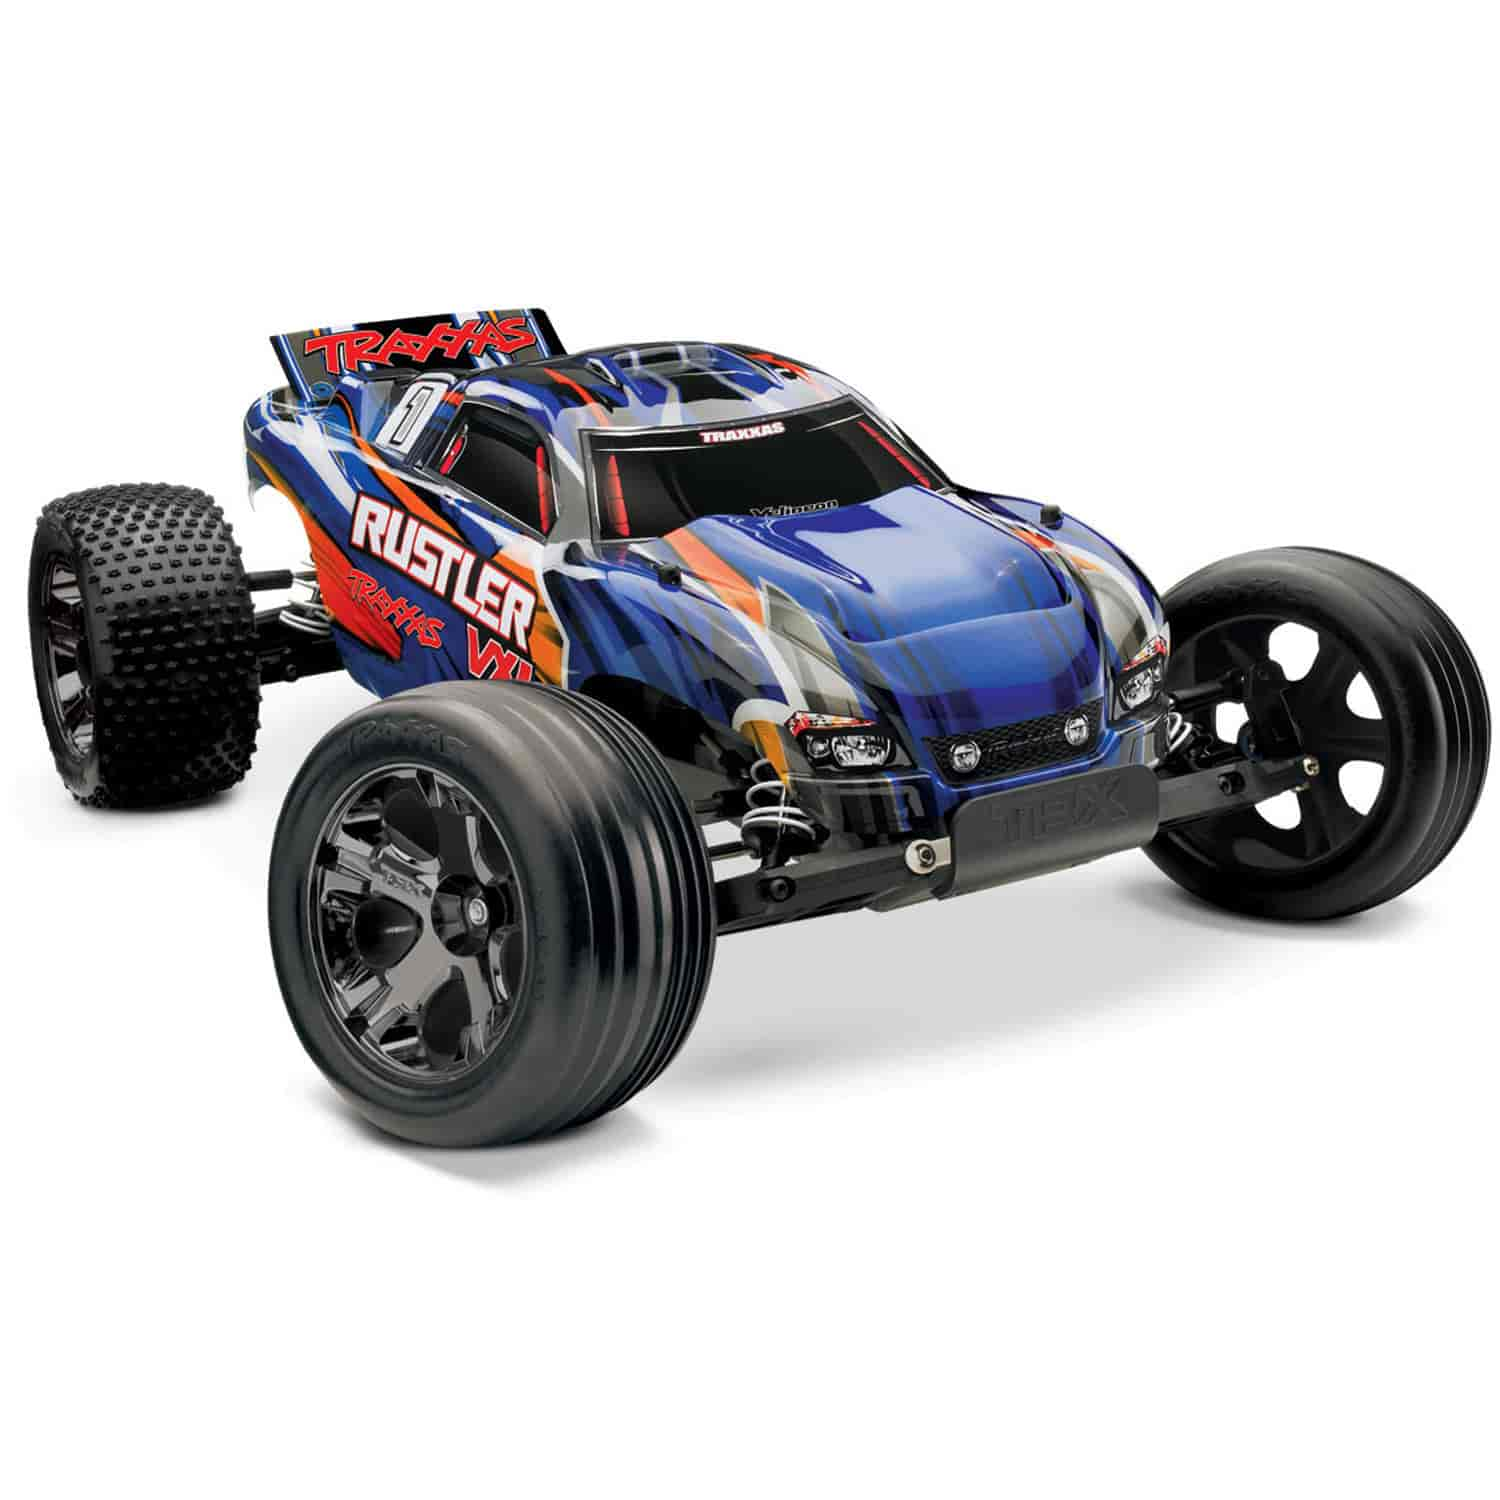 Traxxas Rustler Schematic 2004 Unlimited Access To Wiring Diagram Nitro Parts For 37076 3 Blue Vxl 2wd Brushless Stadium Truck 1 10 Rh Jegs Com